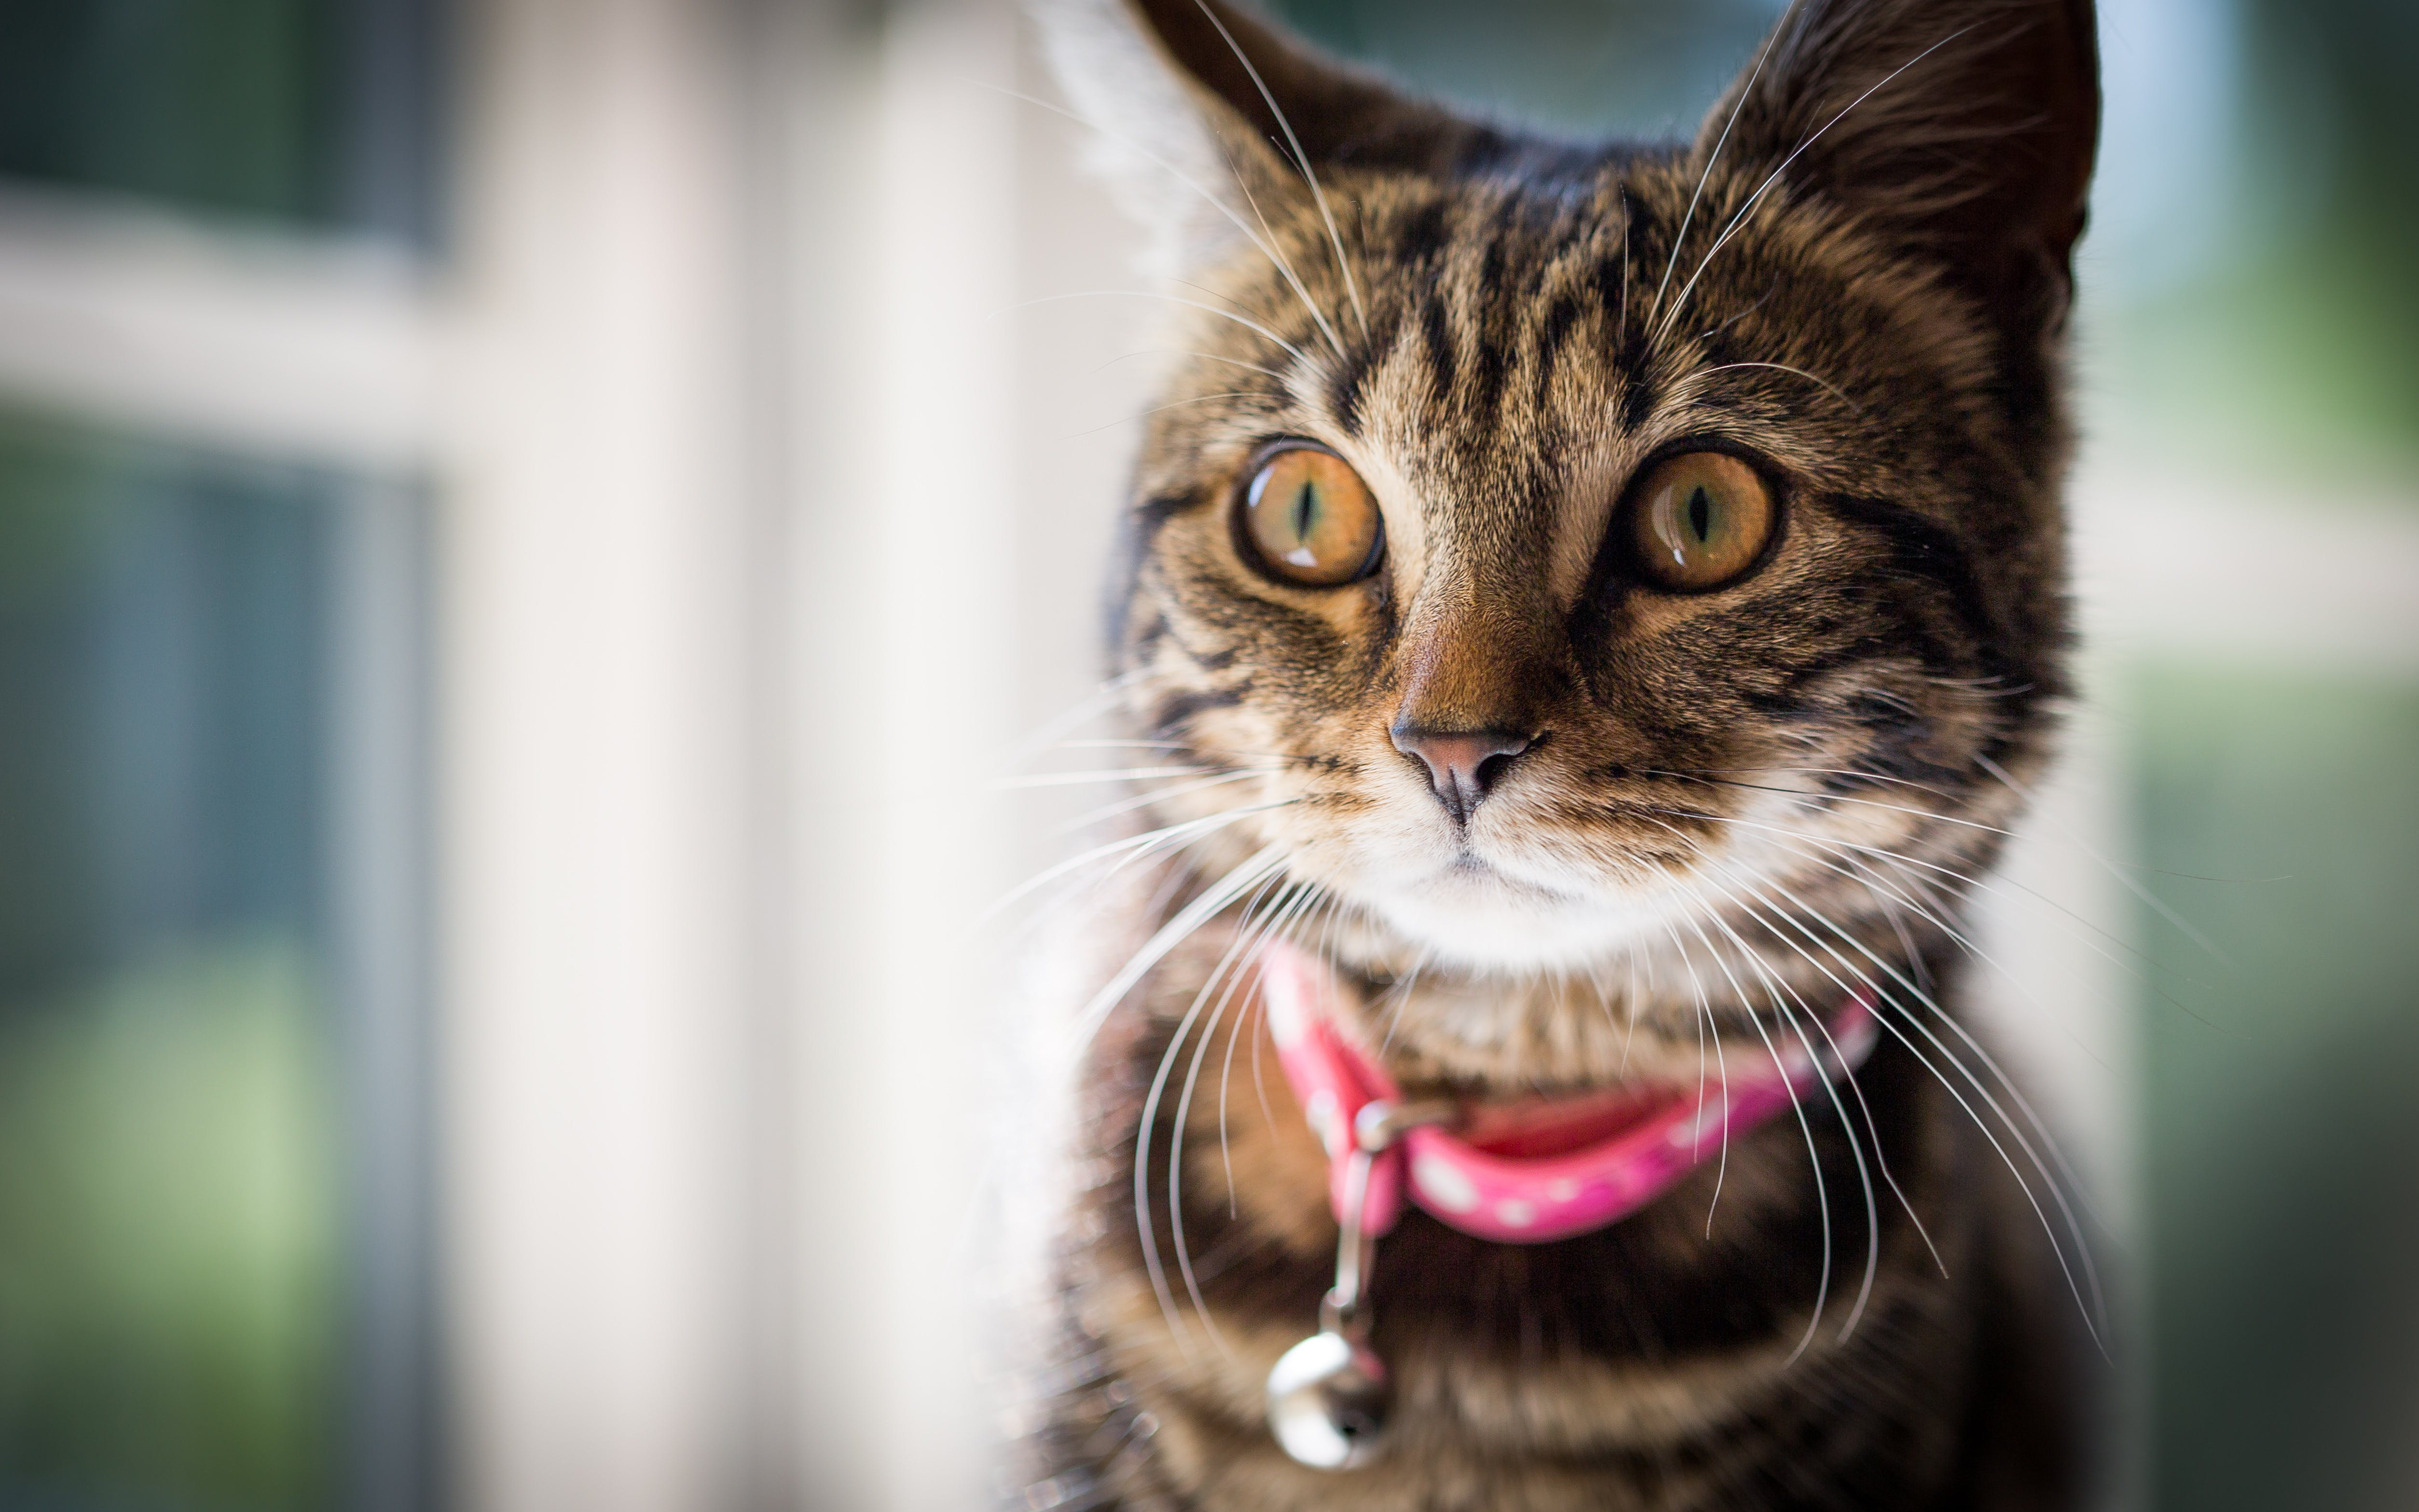 Free stock photo of kitten, cat, stare, tabby